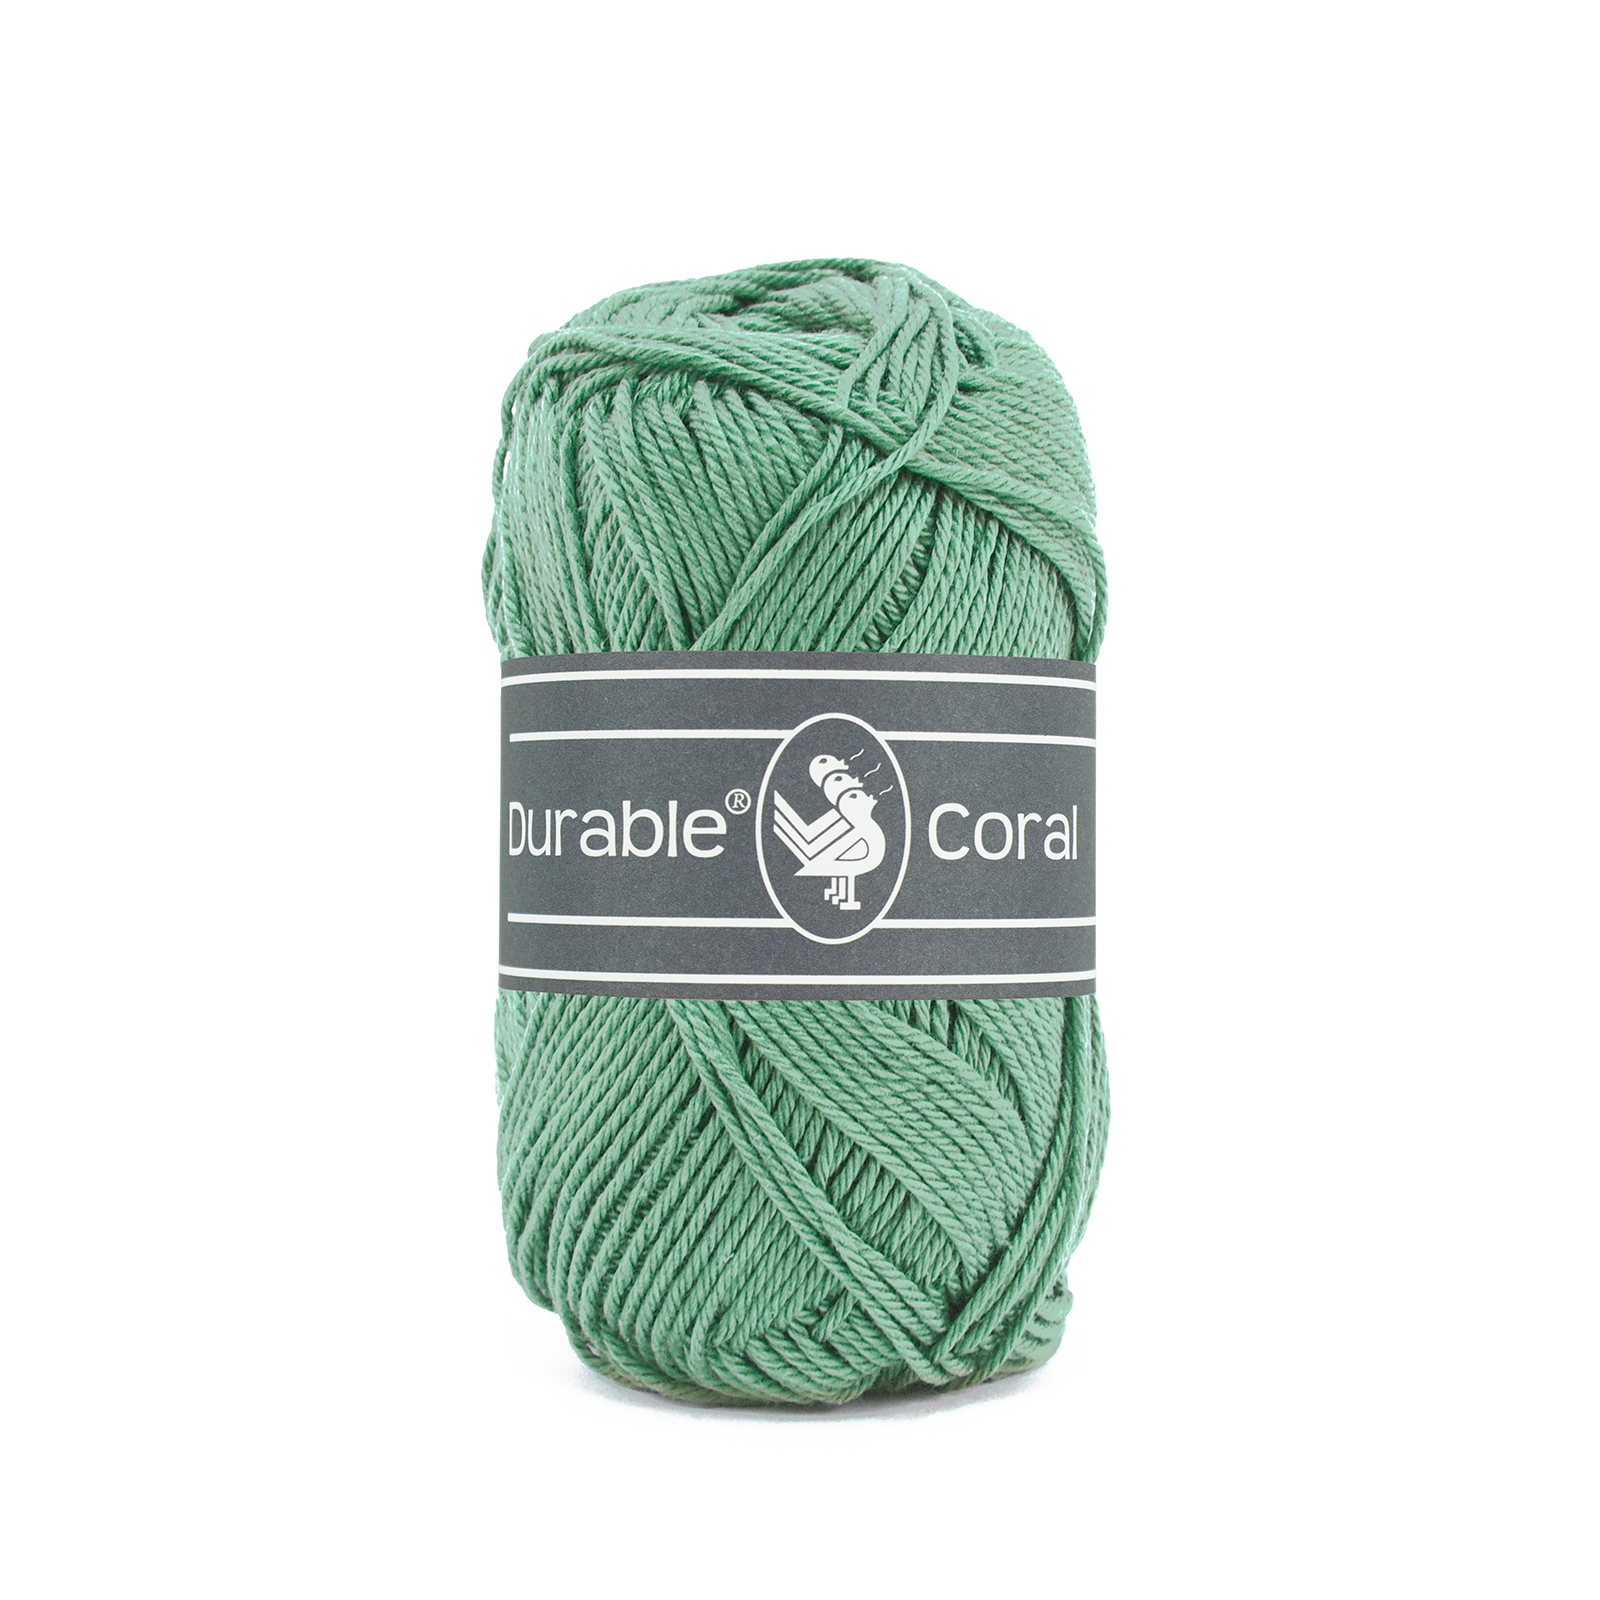 Durable Coral – 2133 Dark Mint